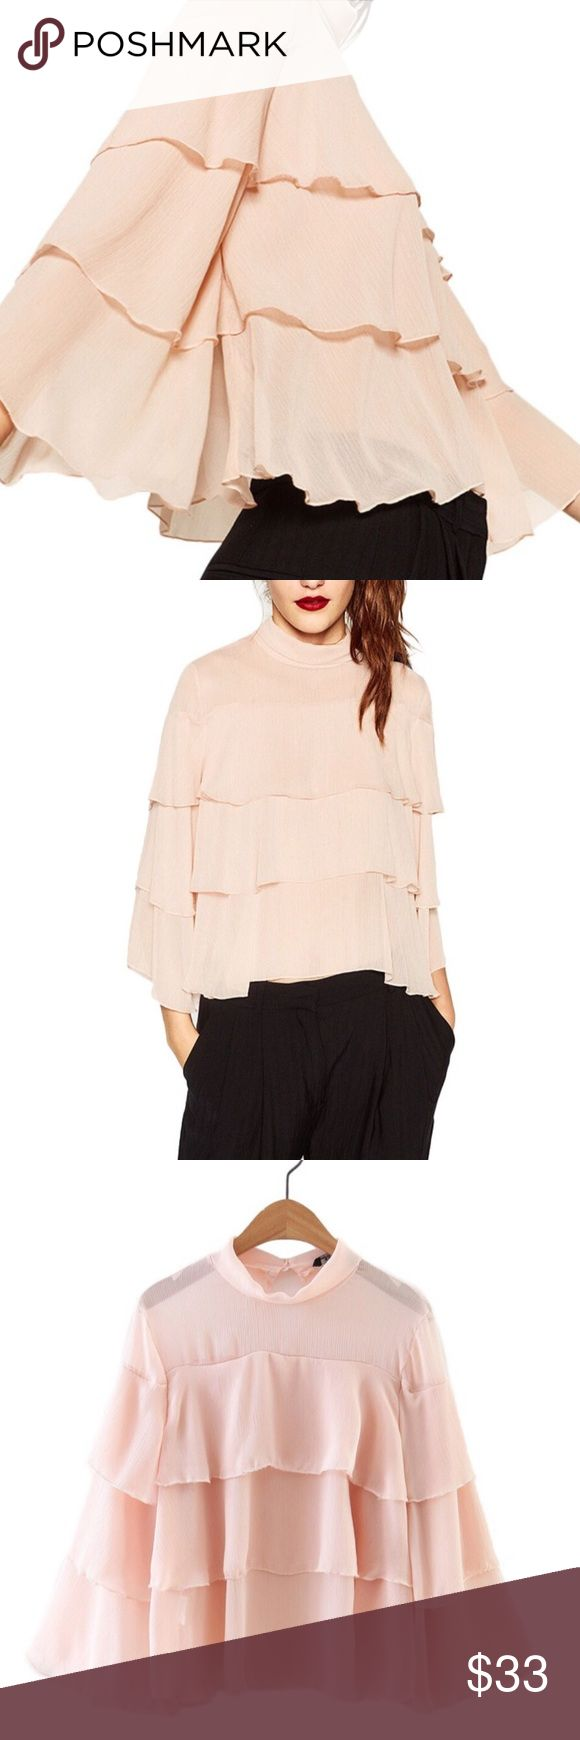 "available soon Layered Bell Top 3/4 length flare/bell sleeve, chiffon/polyester blend, beautifully feminine ruffles  ❤Add this listing to your ""likes"" & I'll send you a notification when it's in stock. Limited quantities. Optional: Purchase now & we will ship automatically when it's in stock. ❓Please ask all your questions before you buy so I can make your purchase absolutely perfect. Tops"